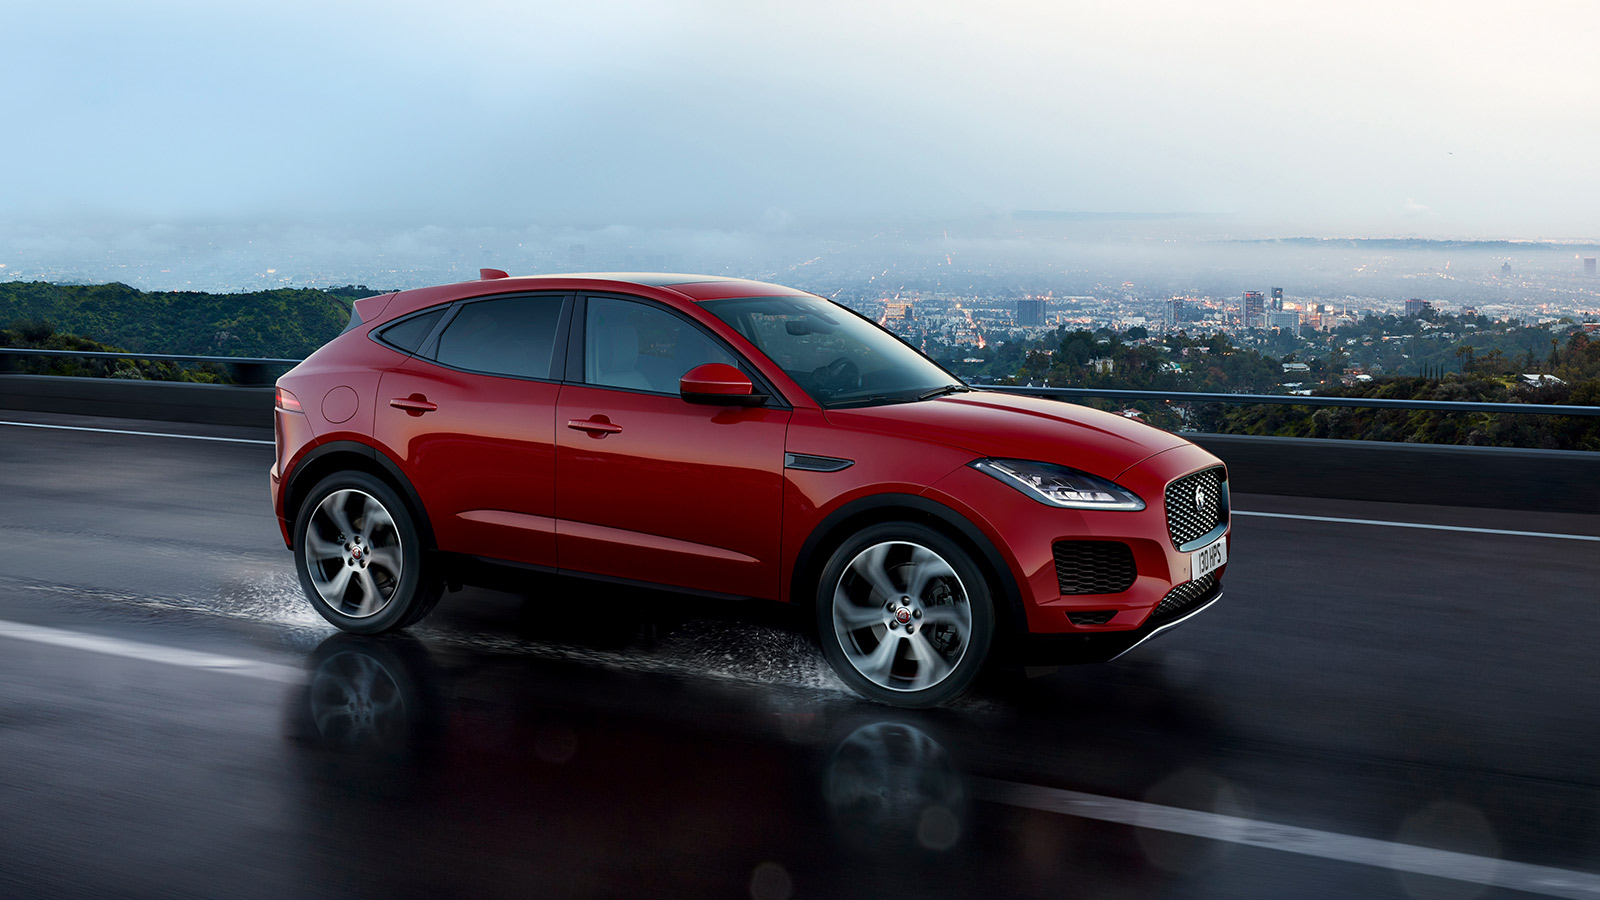 Red jaguar E-Pace driving on wet road with a cityscape in the distant.